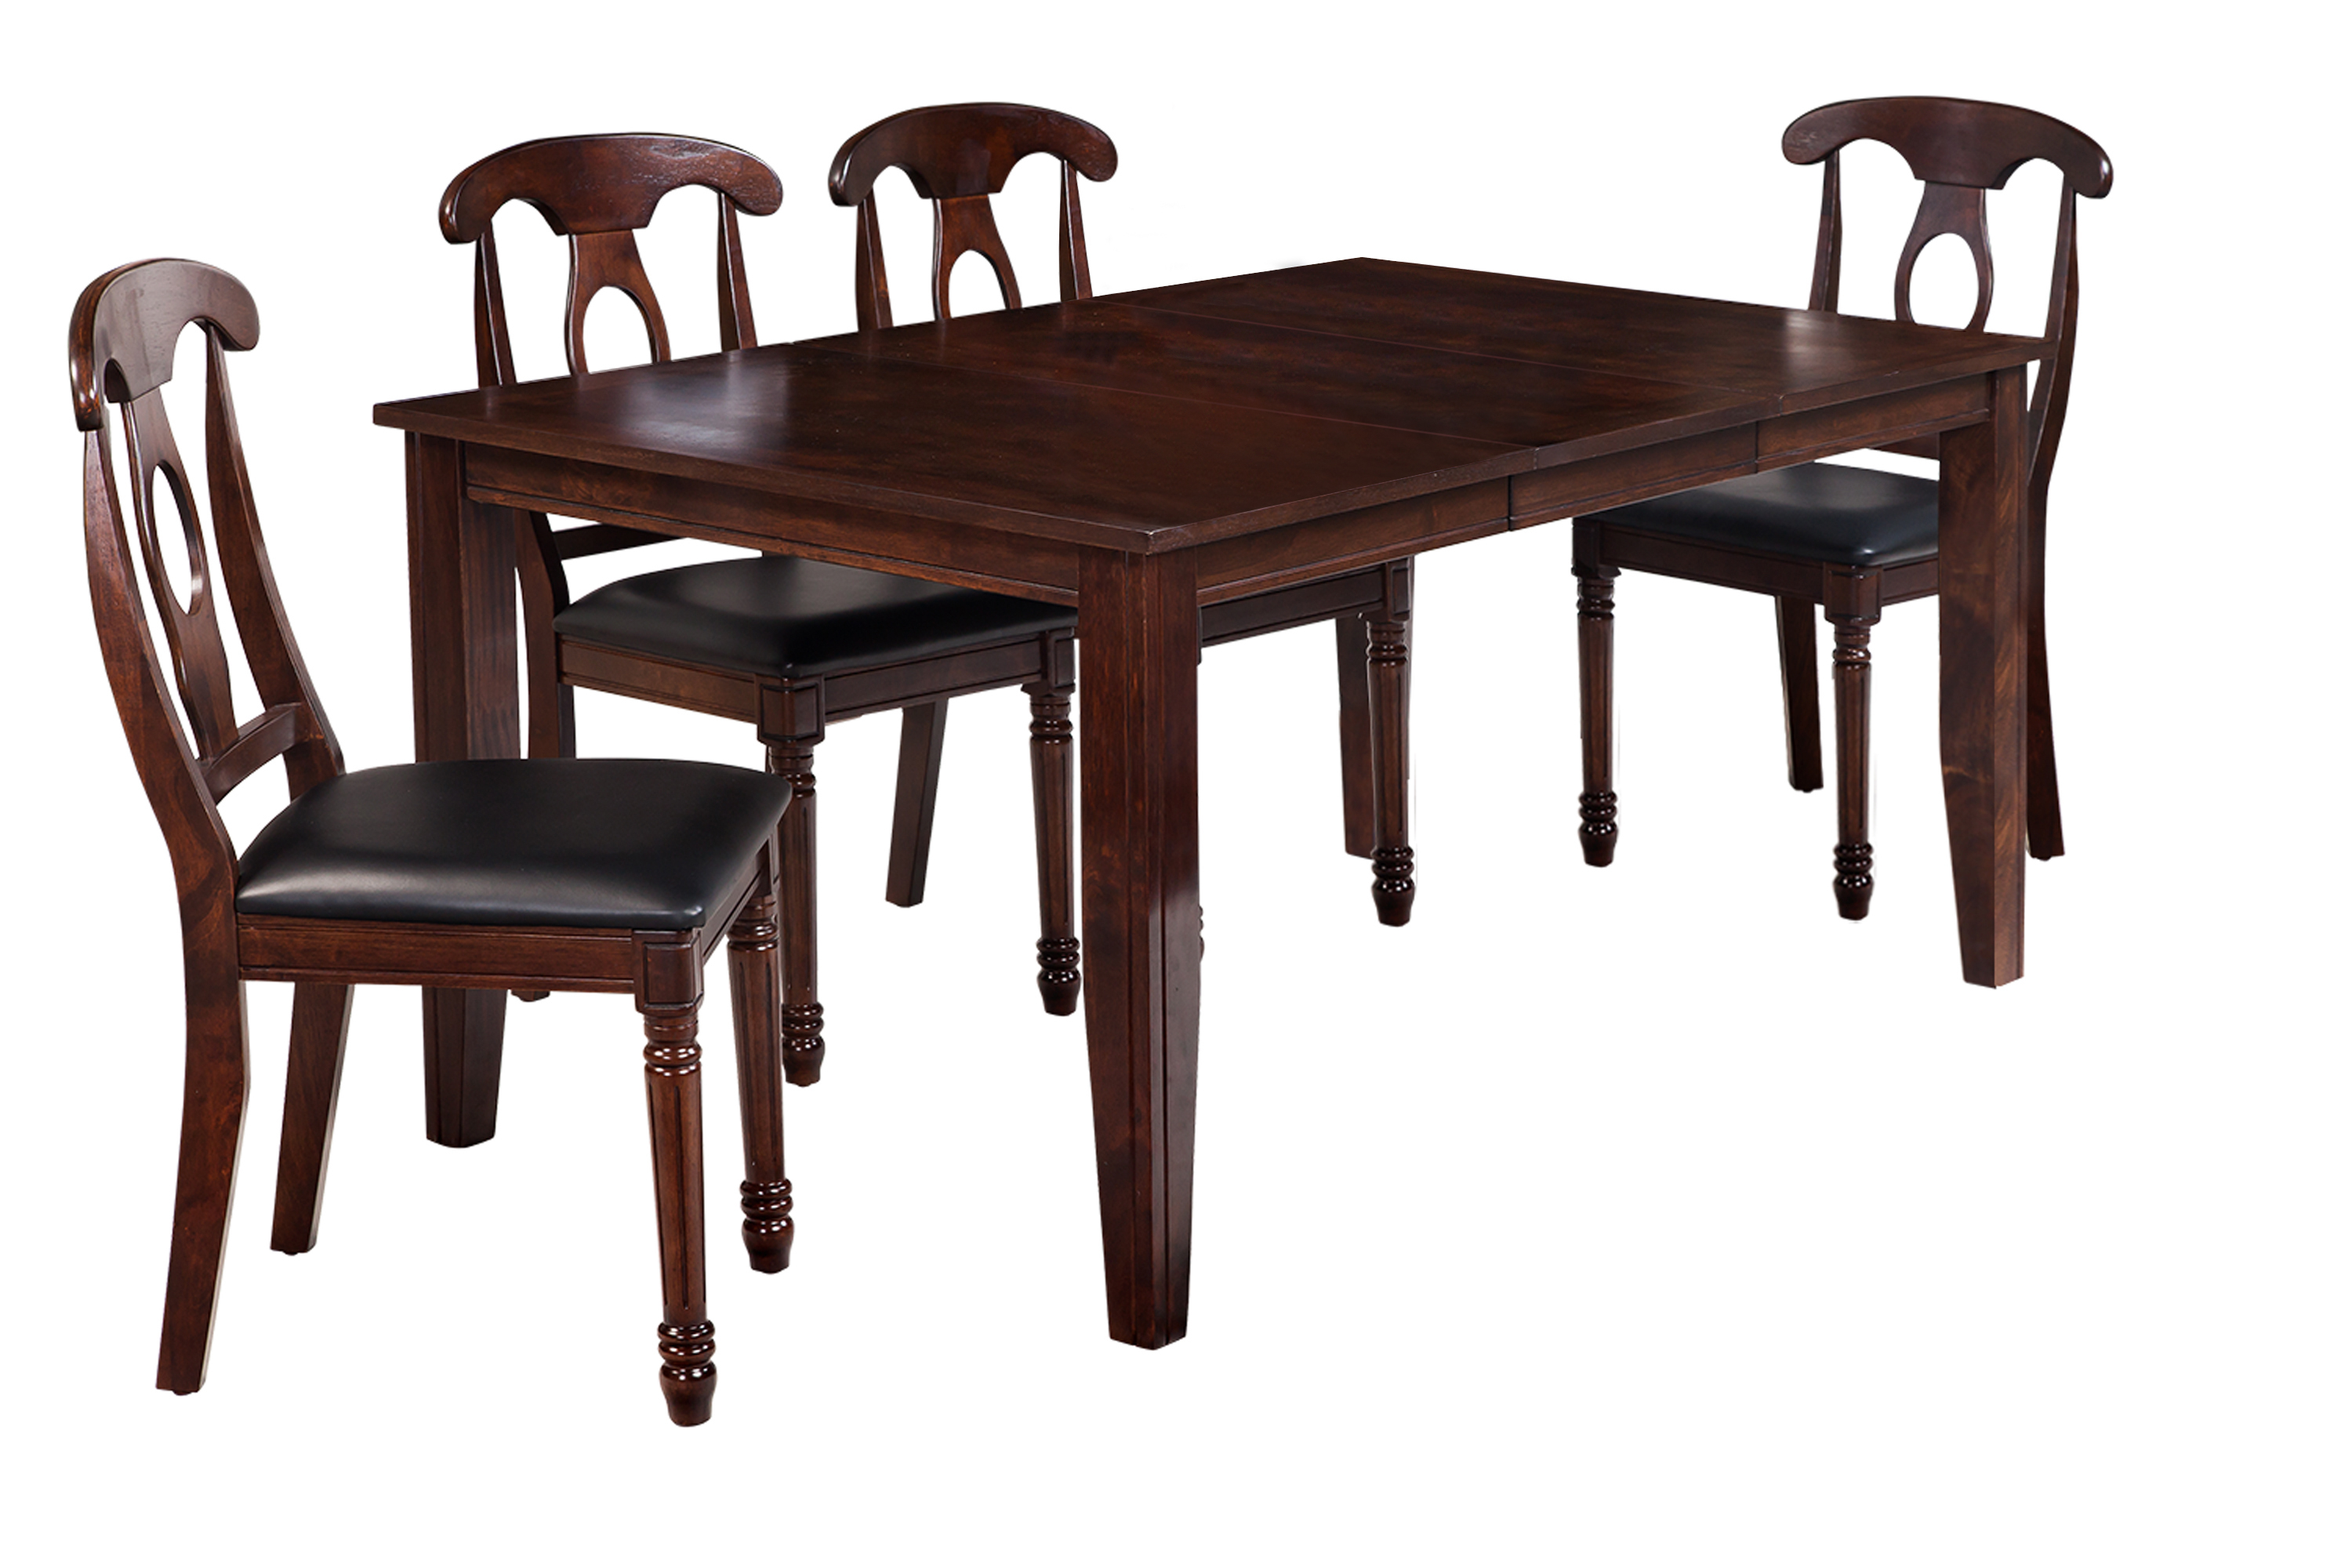 Adan 5 Piece Solid Wood Dining Sets (Set Of 5) With Regard To Current Ttp Furnish (View 10 of 20)